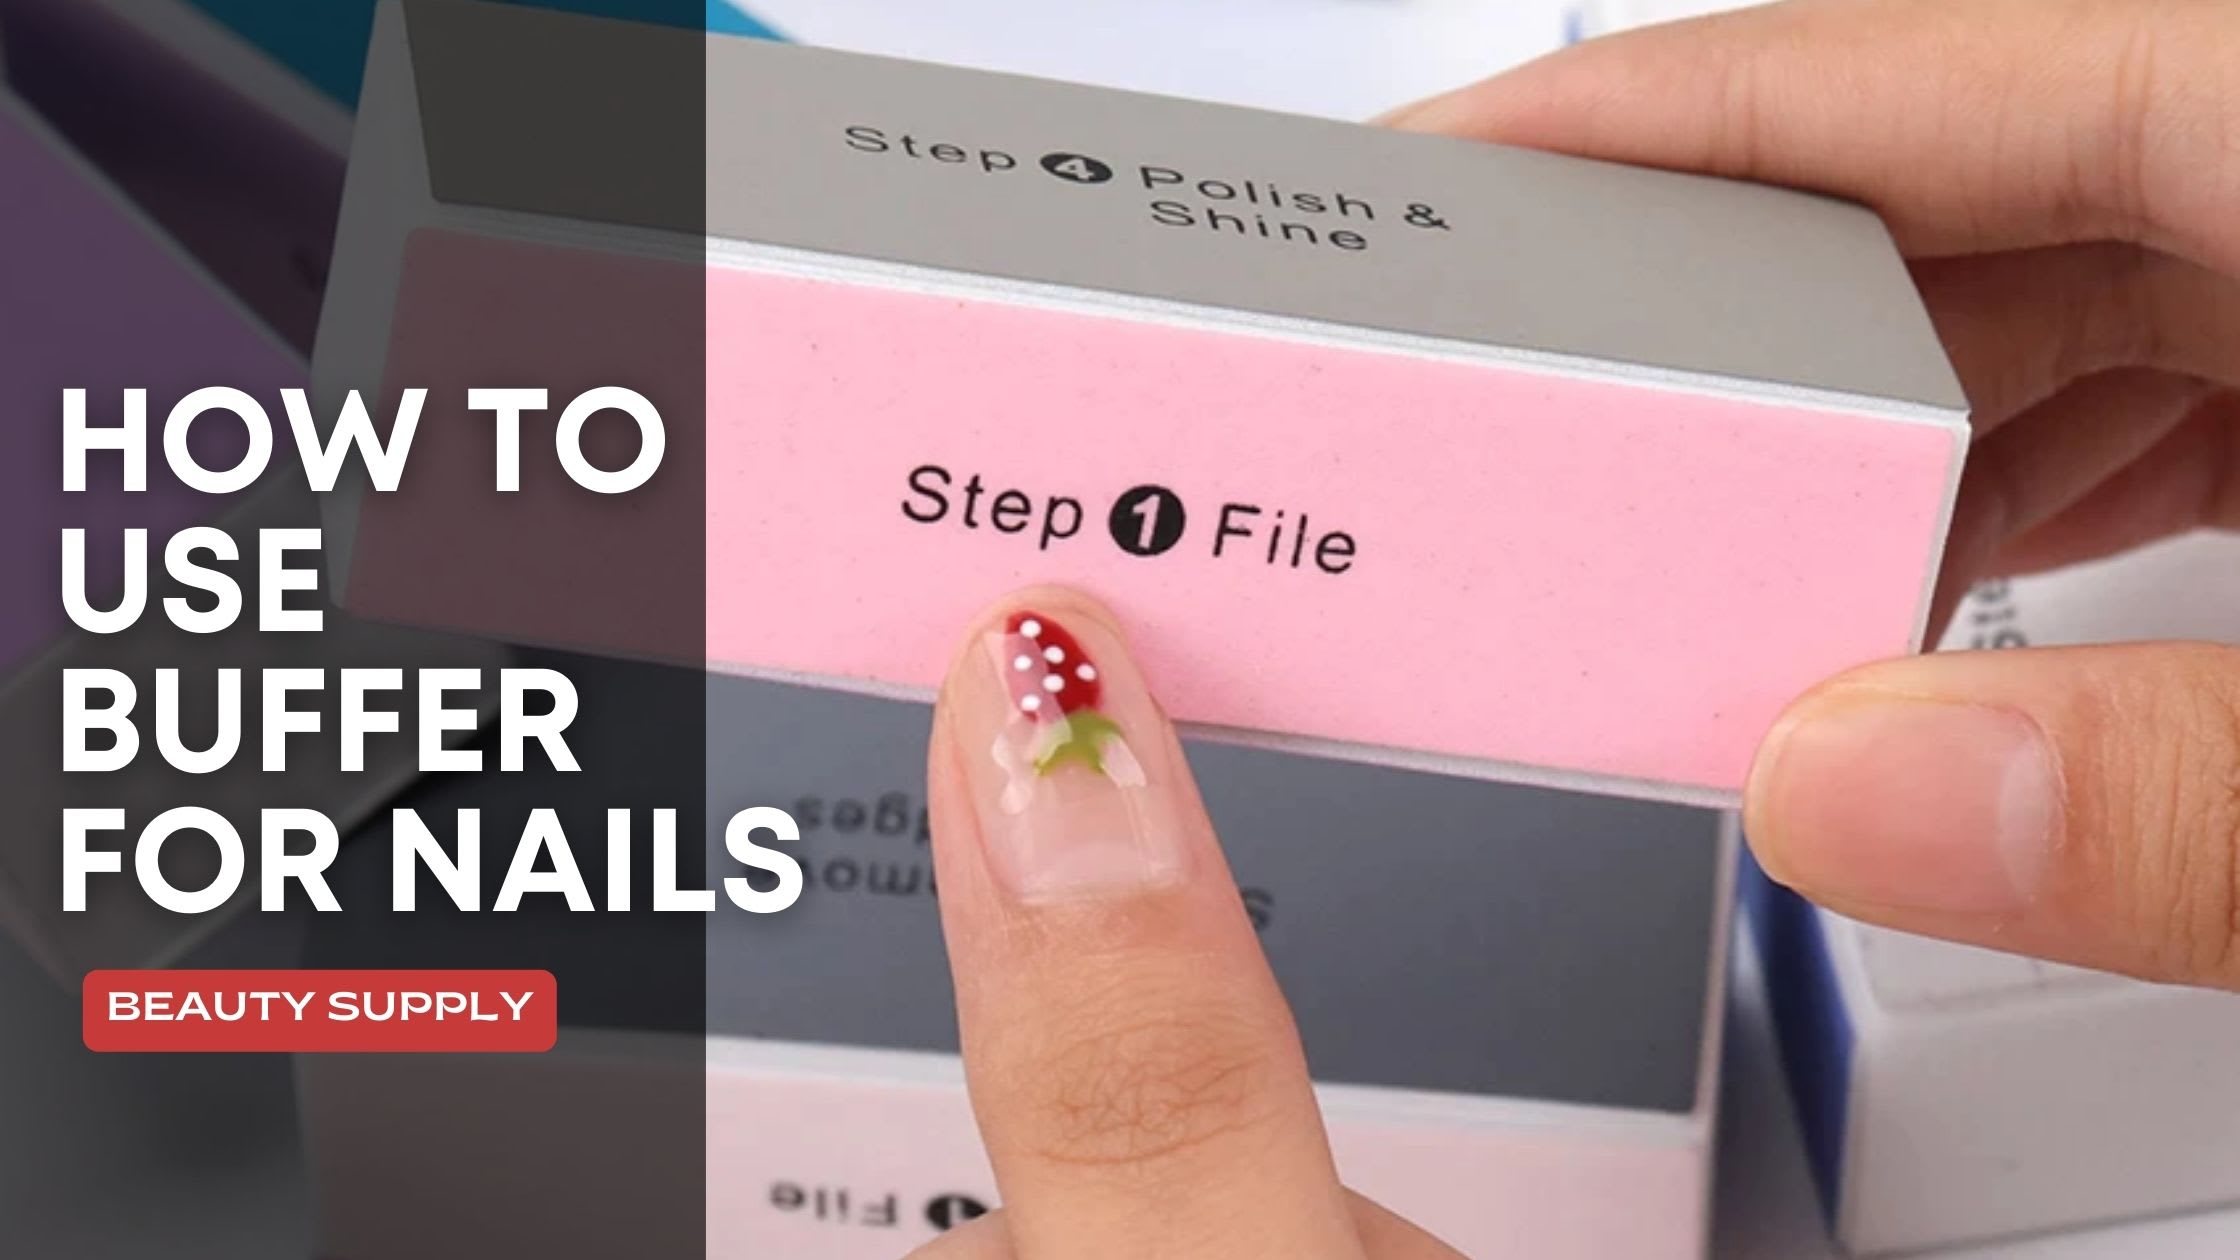 How To Use Buffer For Nails